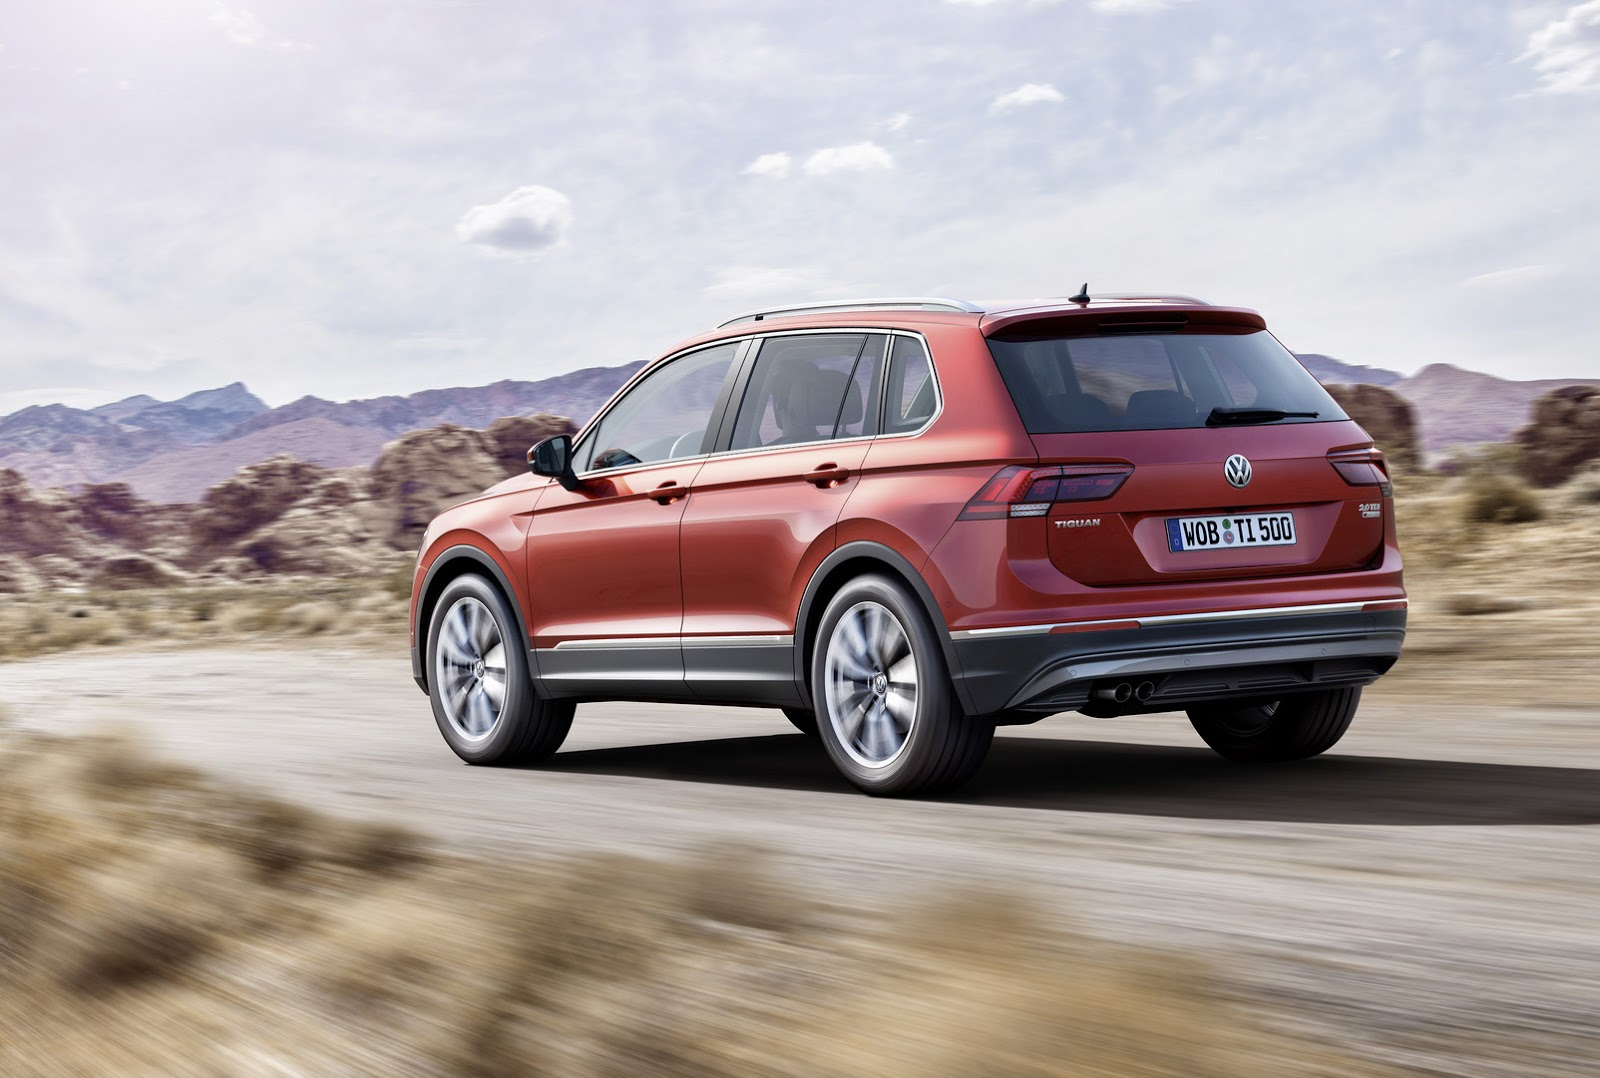 Vw Tiguan Is Bigger More Mature And More Premium